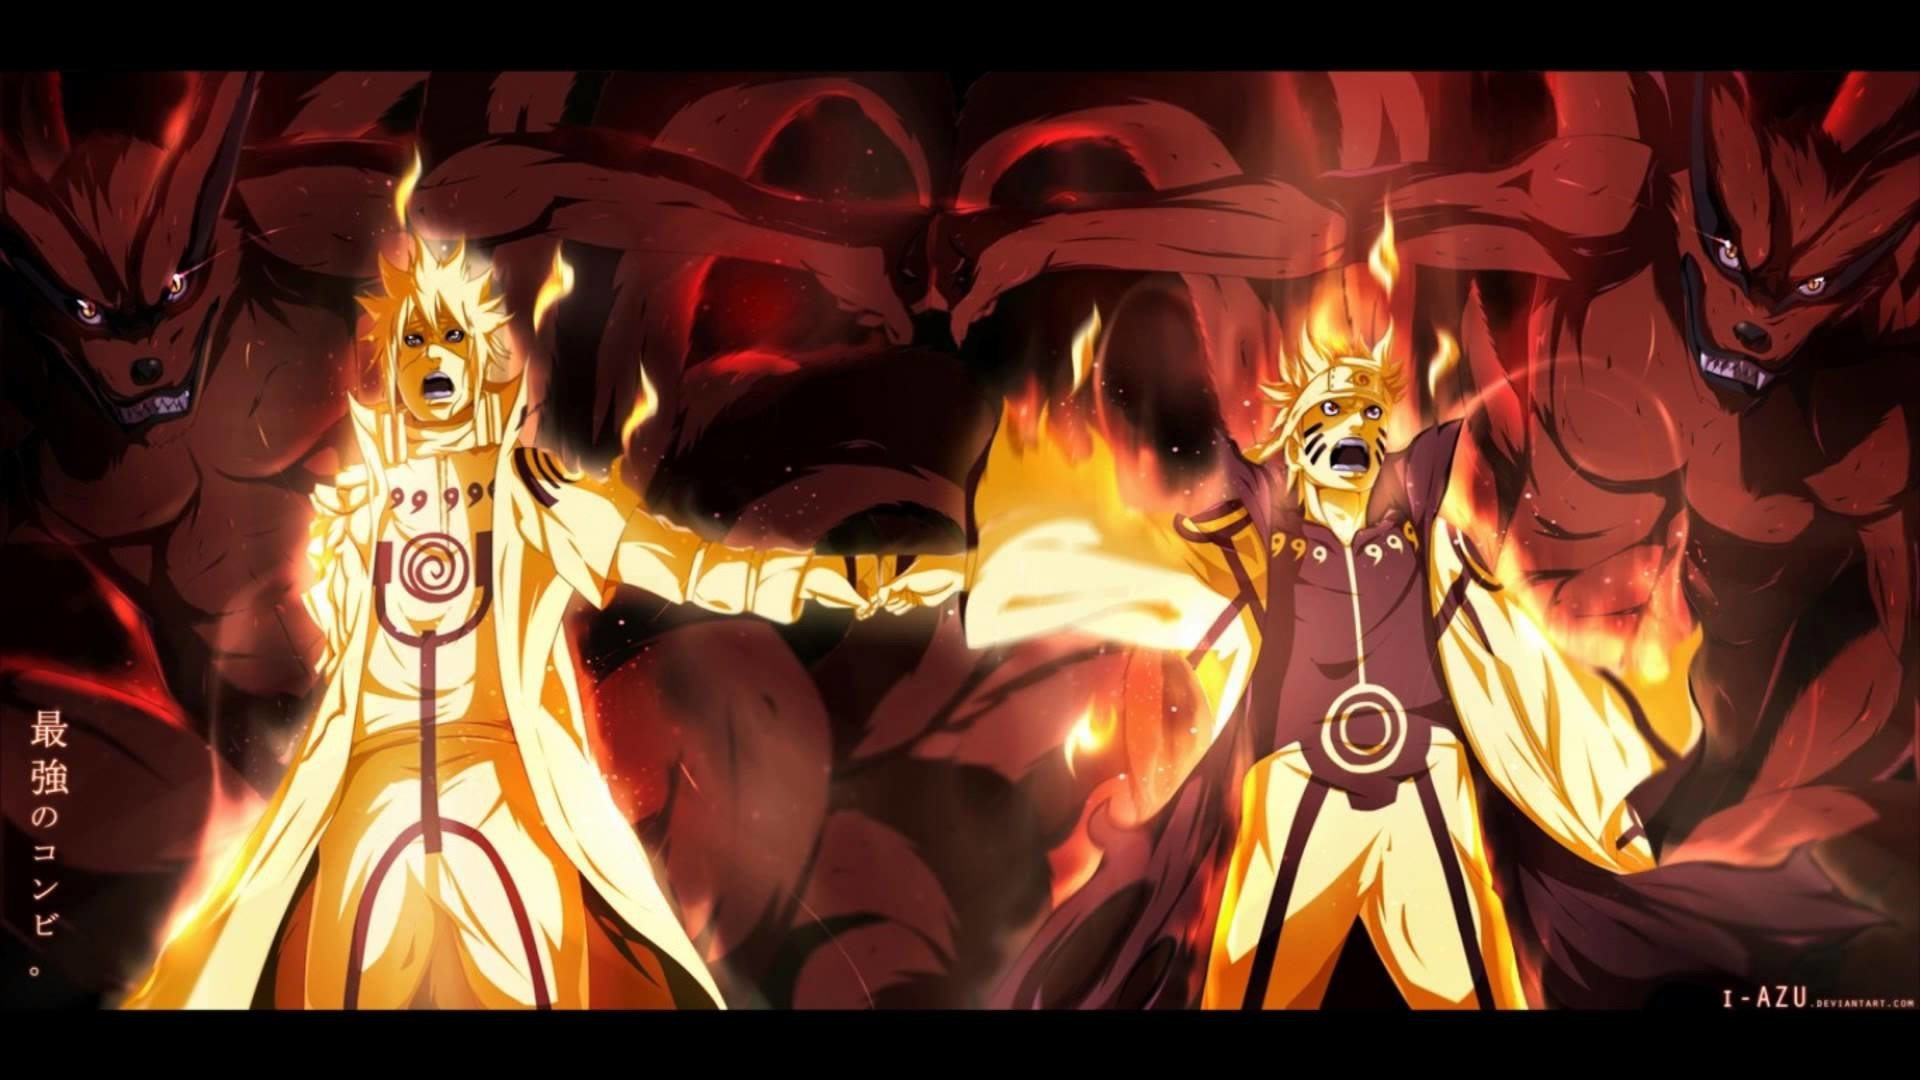 1920x1080  Naruto wallpapers Pack Full HD - Cartoon Wallpapers